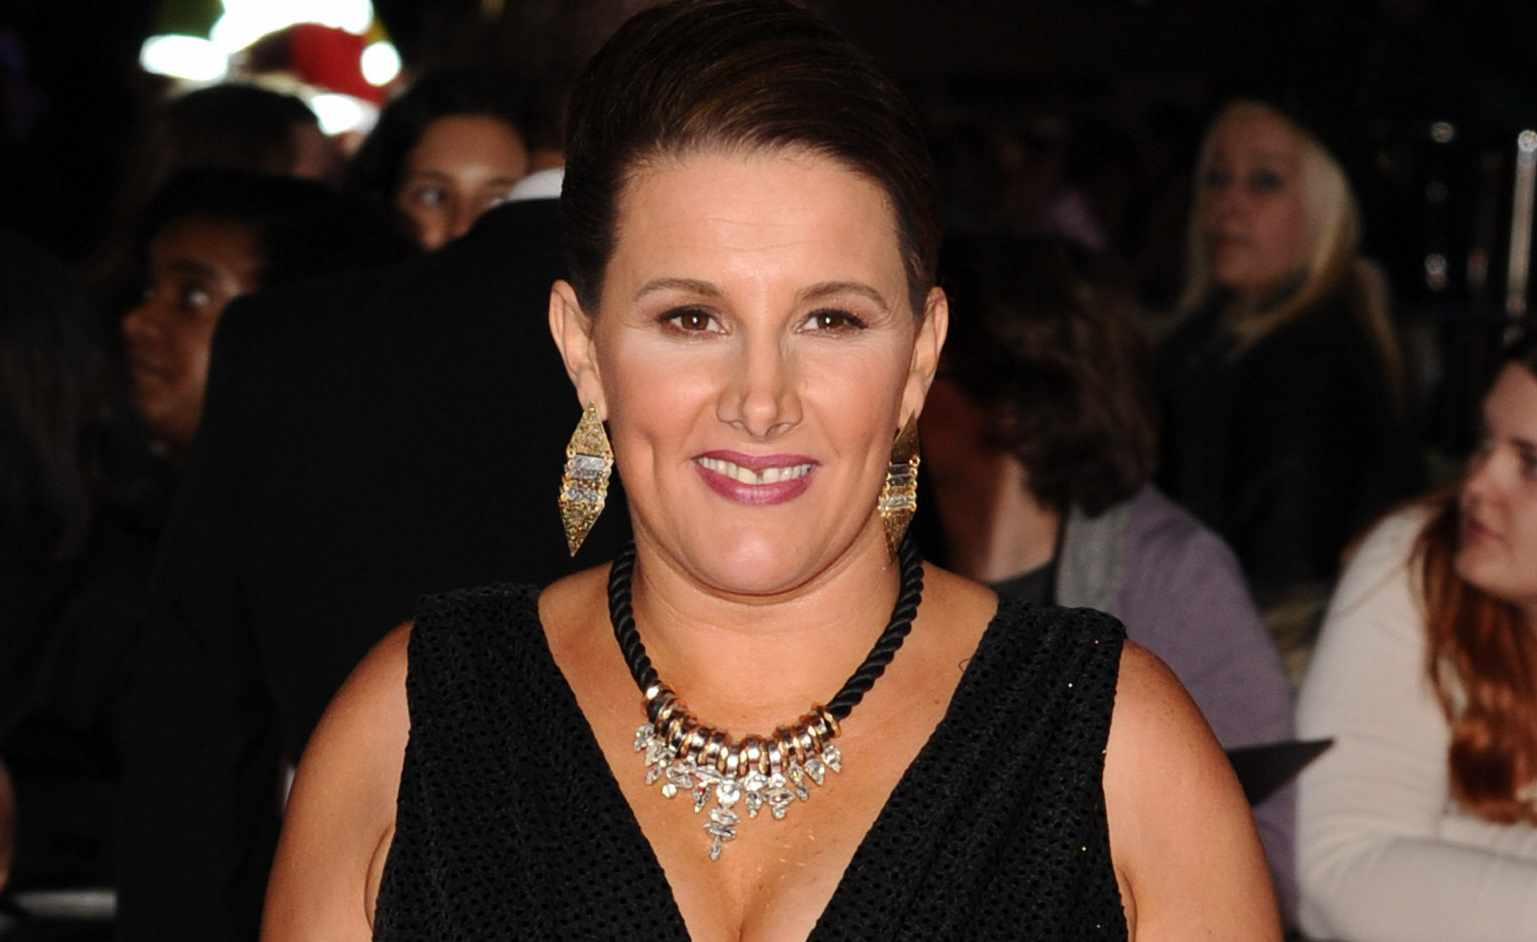 pregnant-sam-bailey-celebrates-emotional-mothers-day_52436